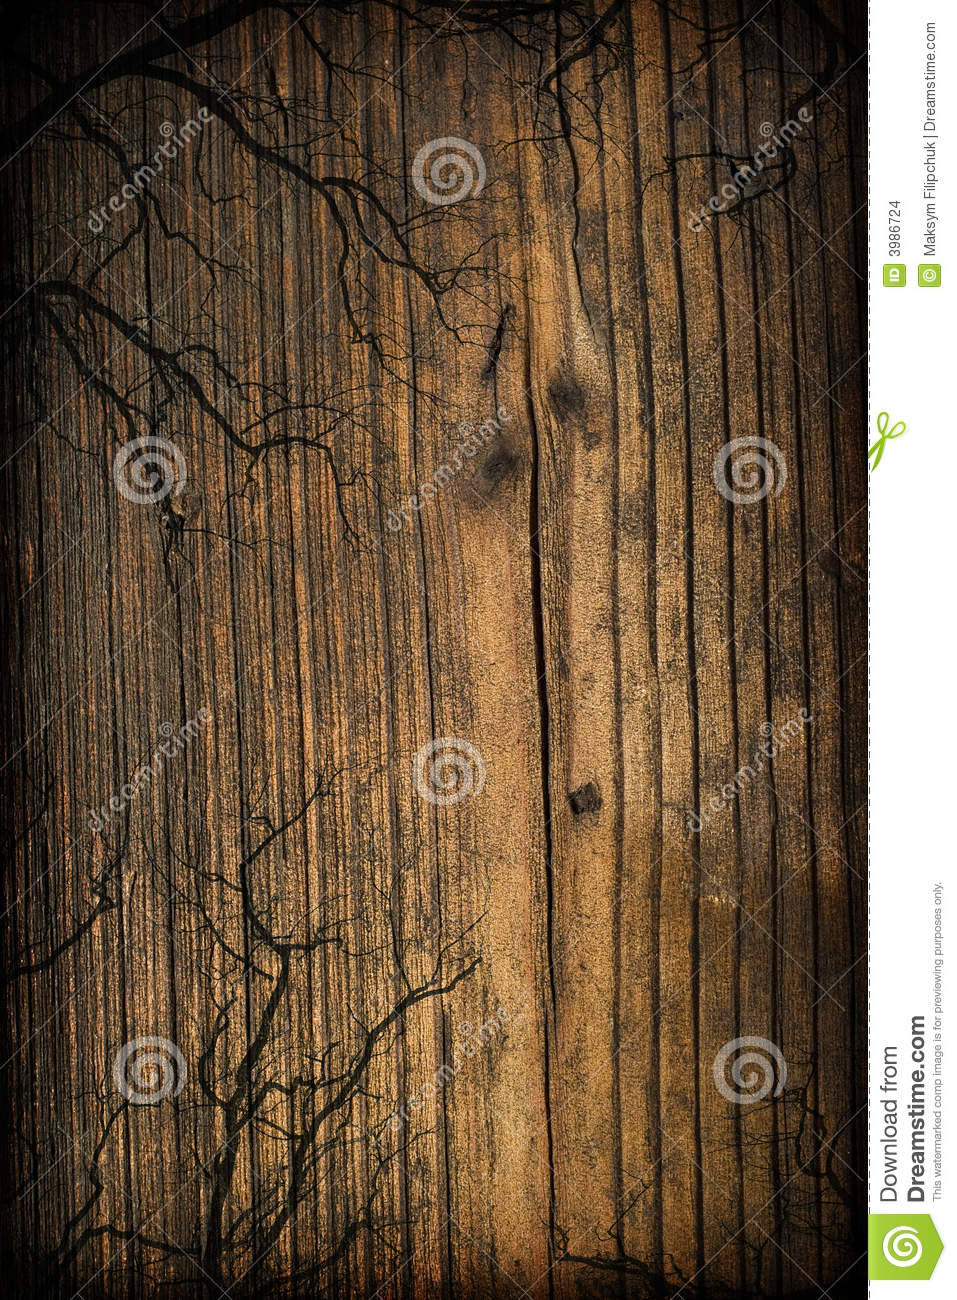 Spooky wooden background